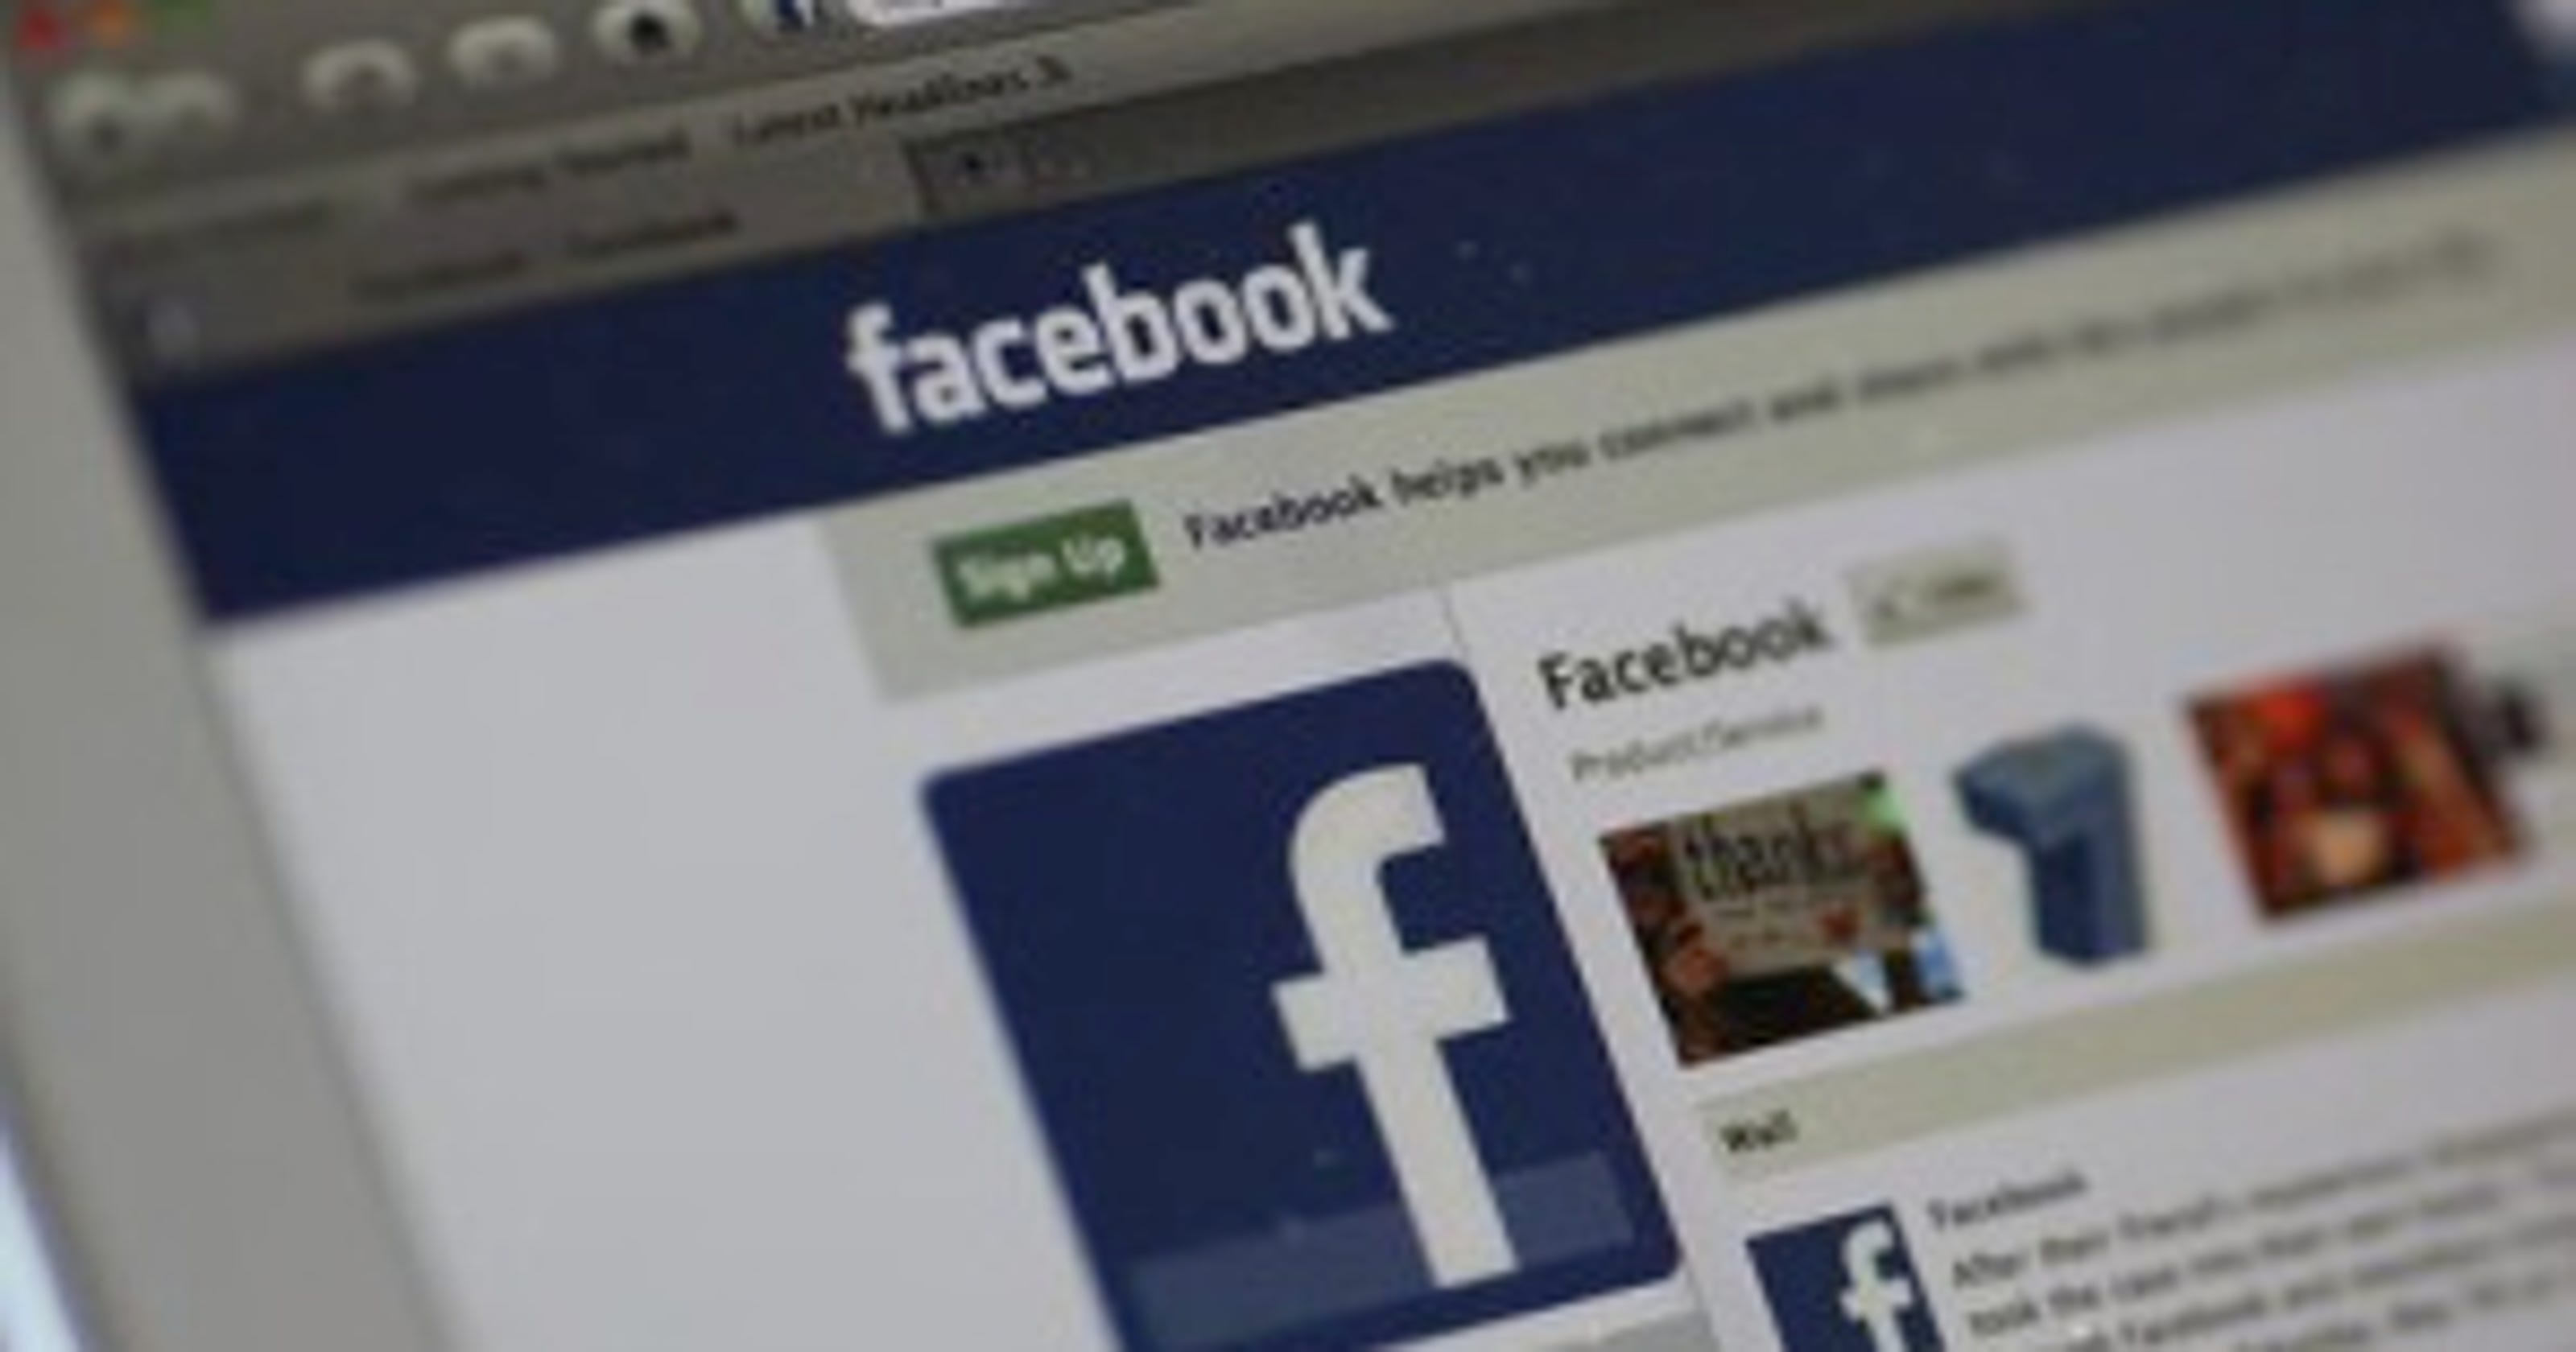 Facebook's latest privacy scandal: What we know now